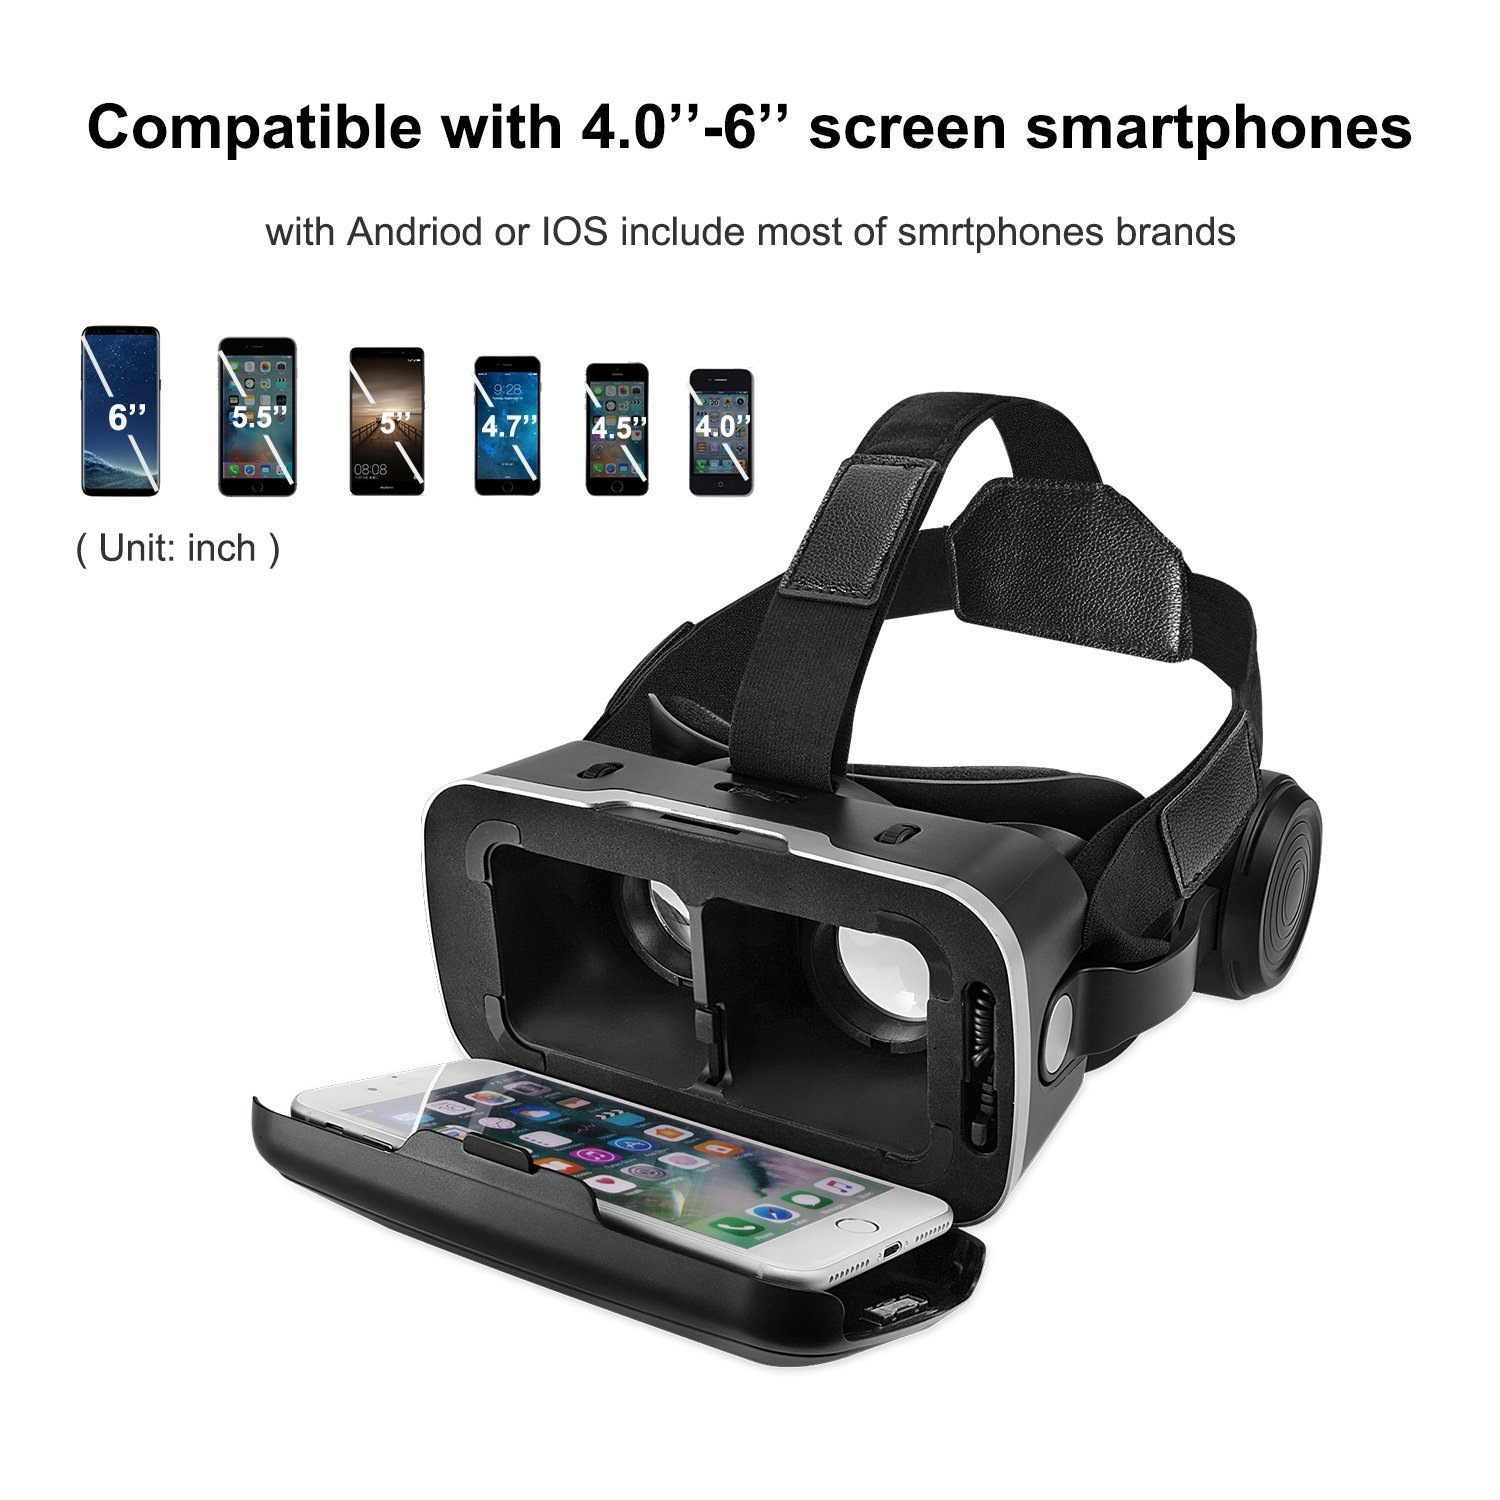 VR Headset, Virtual Reality Headset,VR Glasses,VR Goggles -for iPhone 6s/6 +/6/5, Samsung Galaxy, Huawei, Google, Moto & All Android Smartphone With Headphones & Adjustable Eye Care System by KAMLE (Image #1)